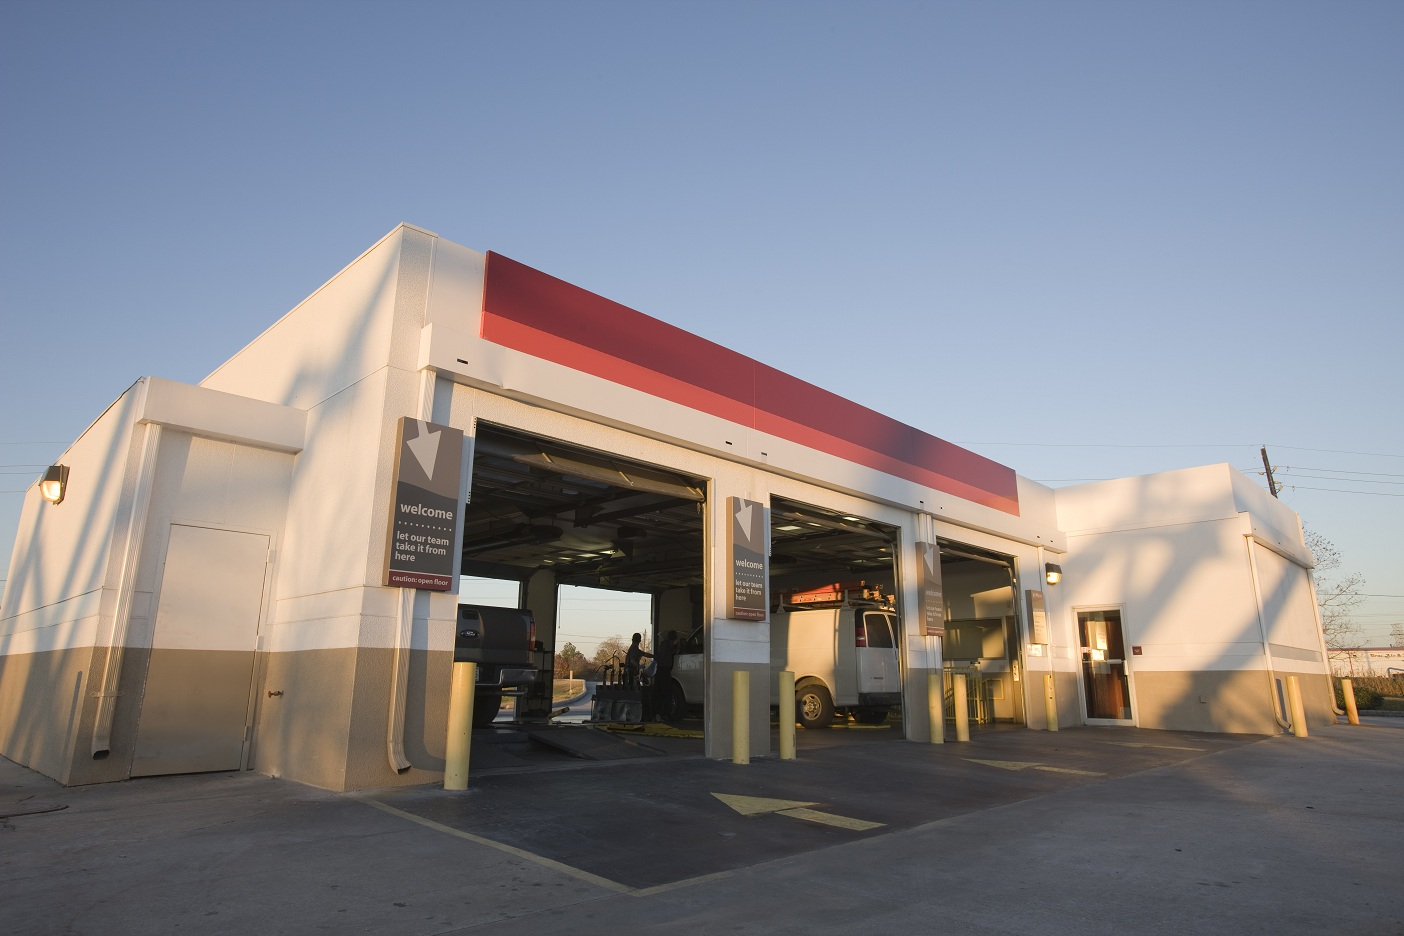 Jiffy Lube in Harker Heights, TX